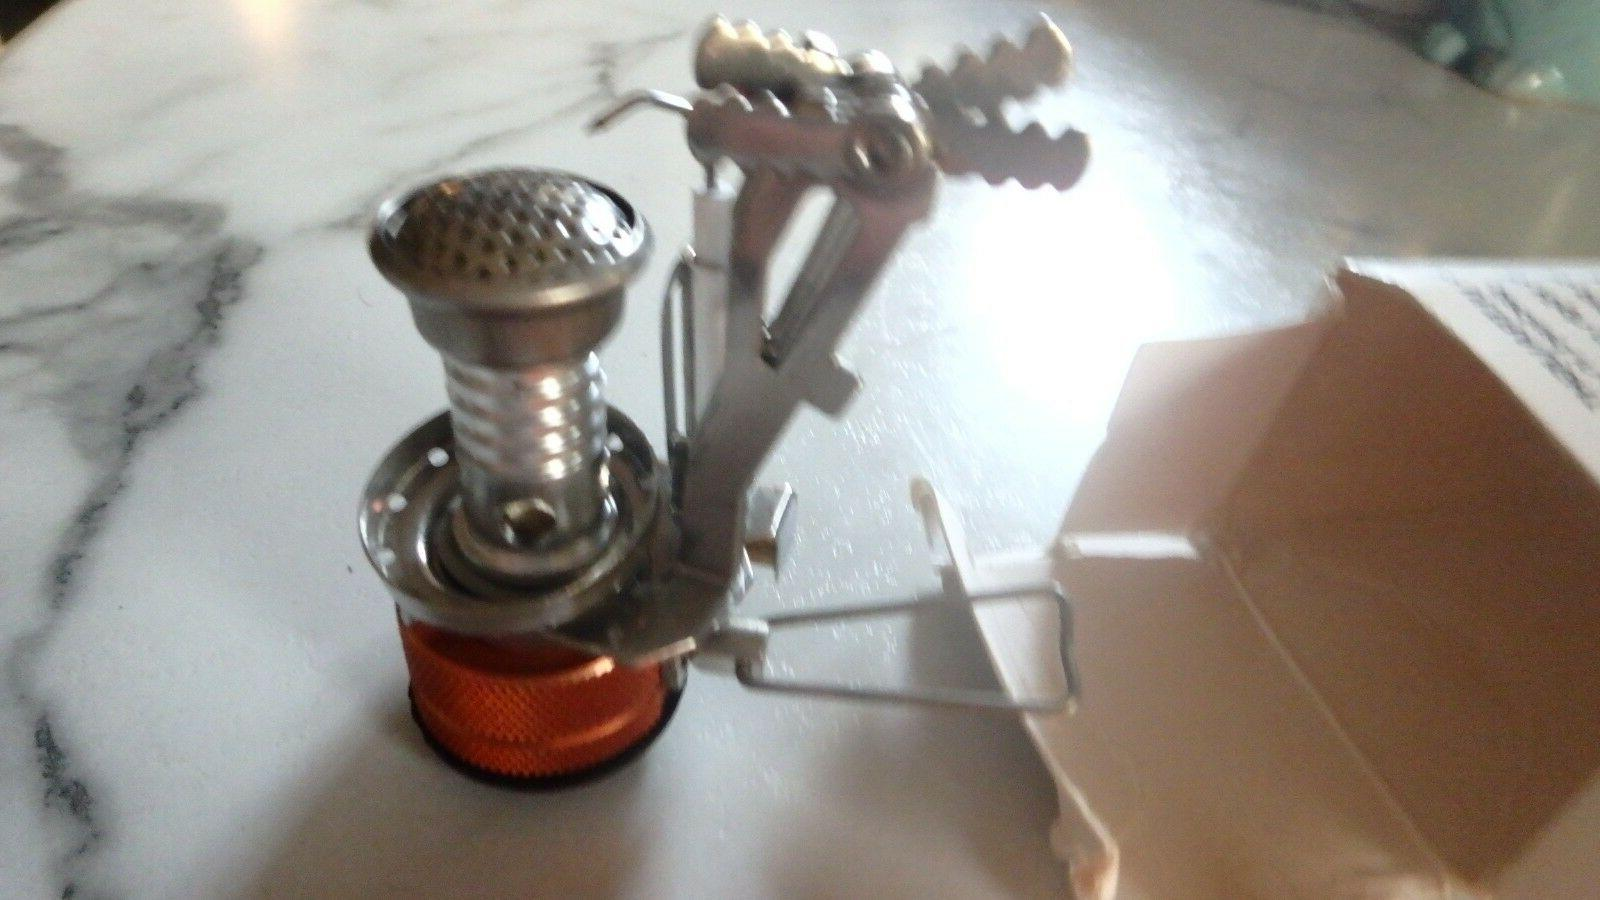 ultralight portable outdoor backpacking camping stove piezo